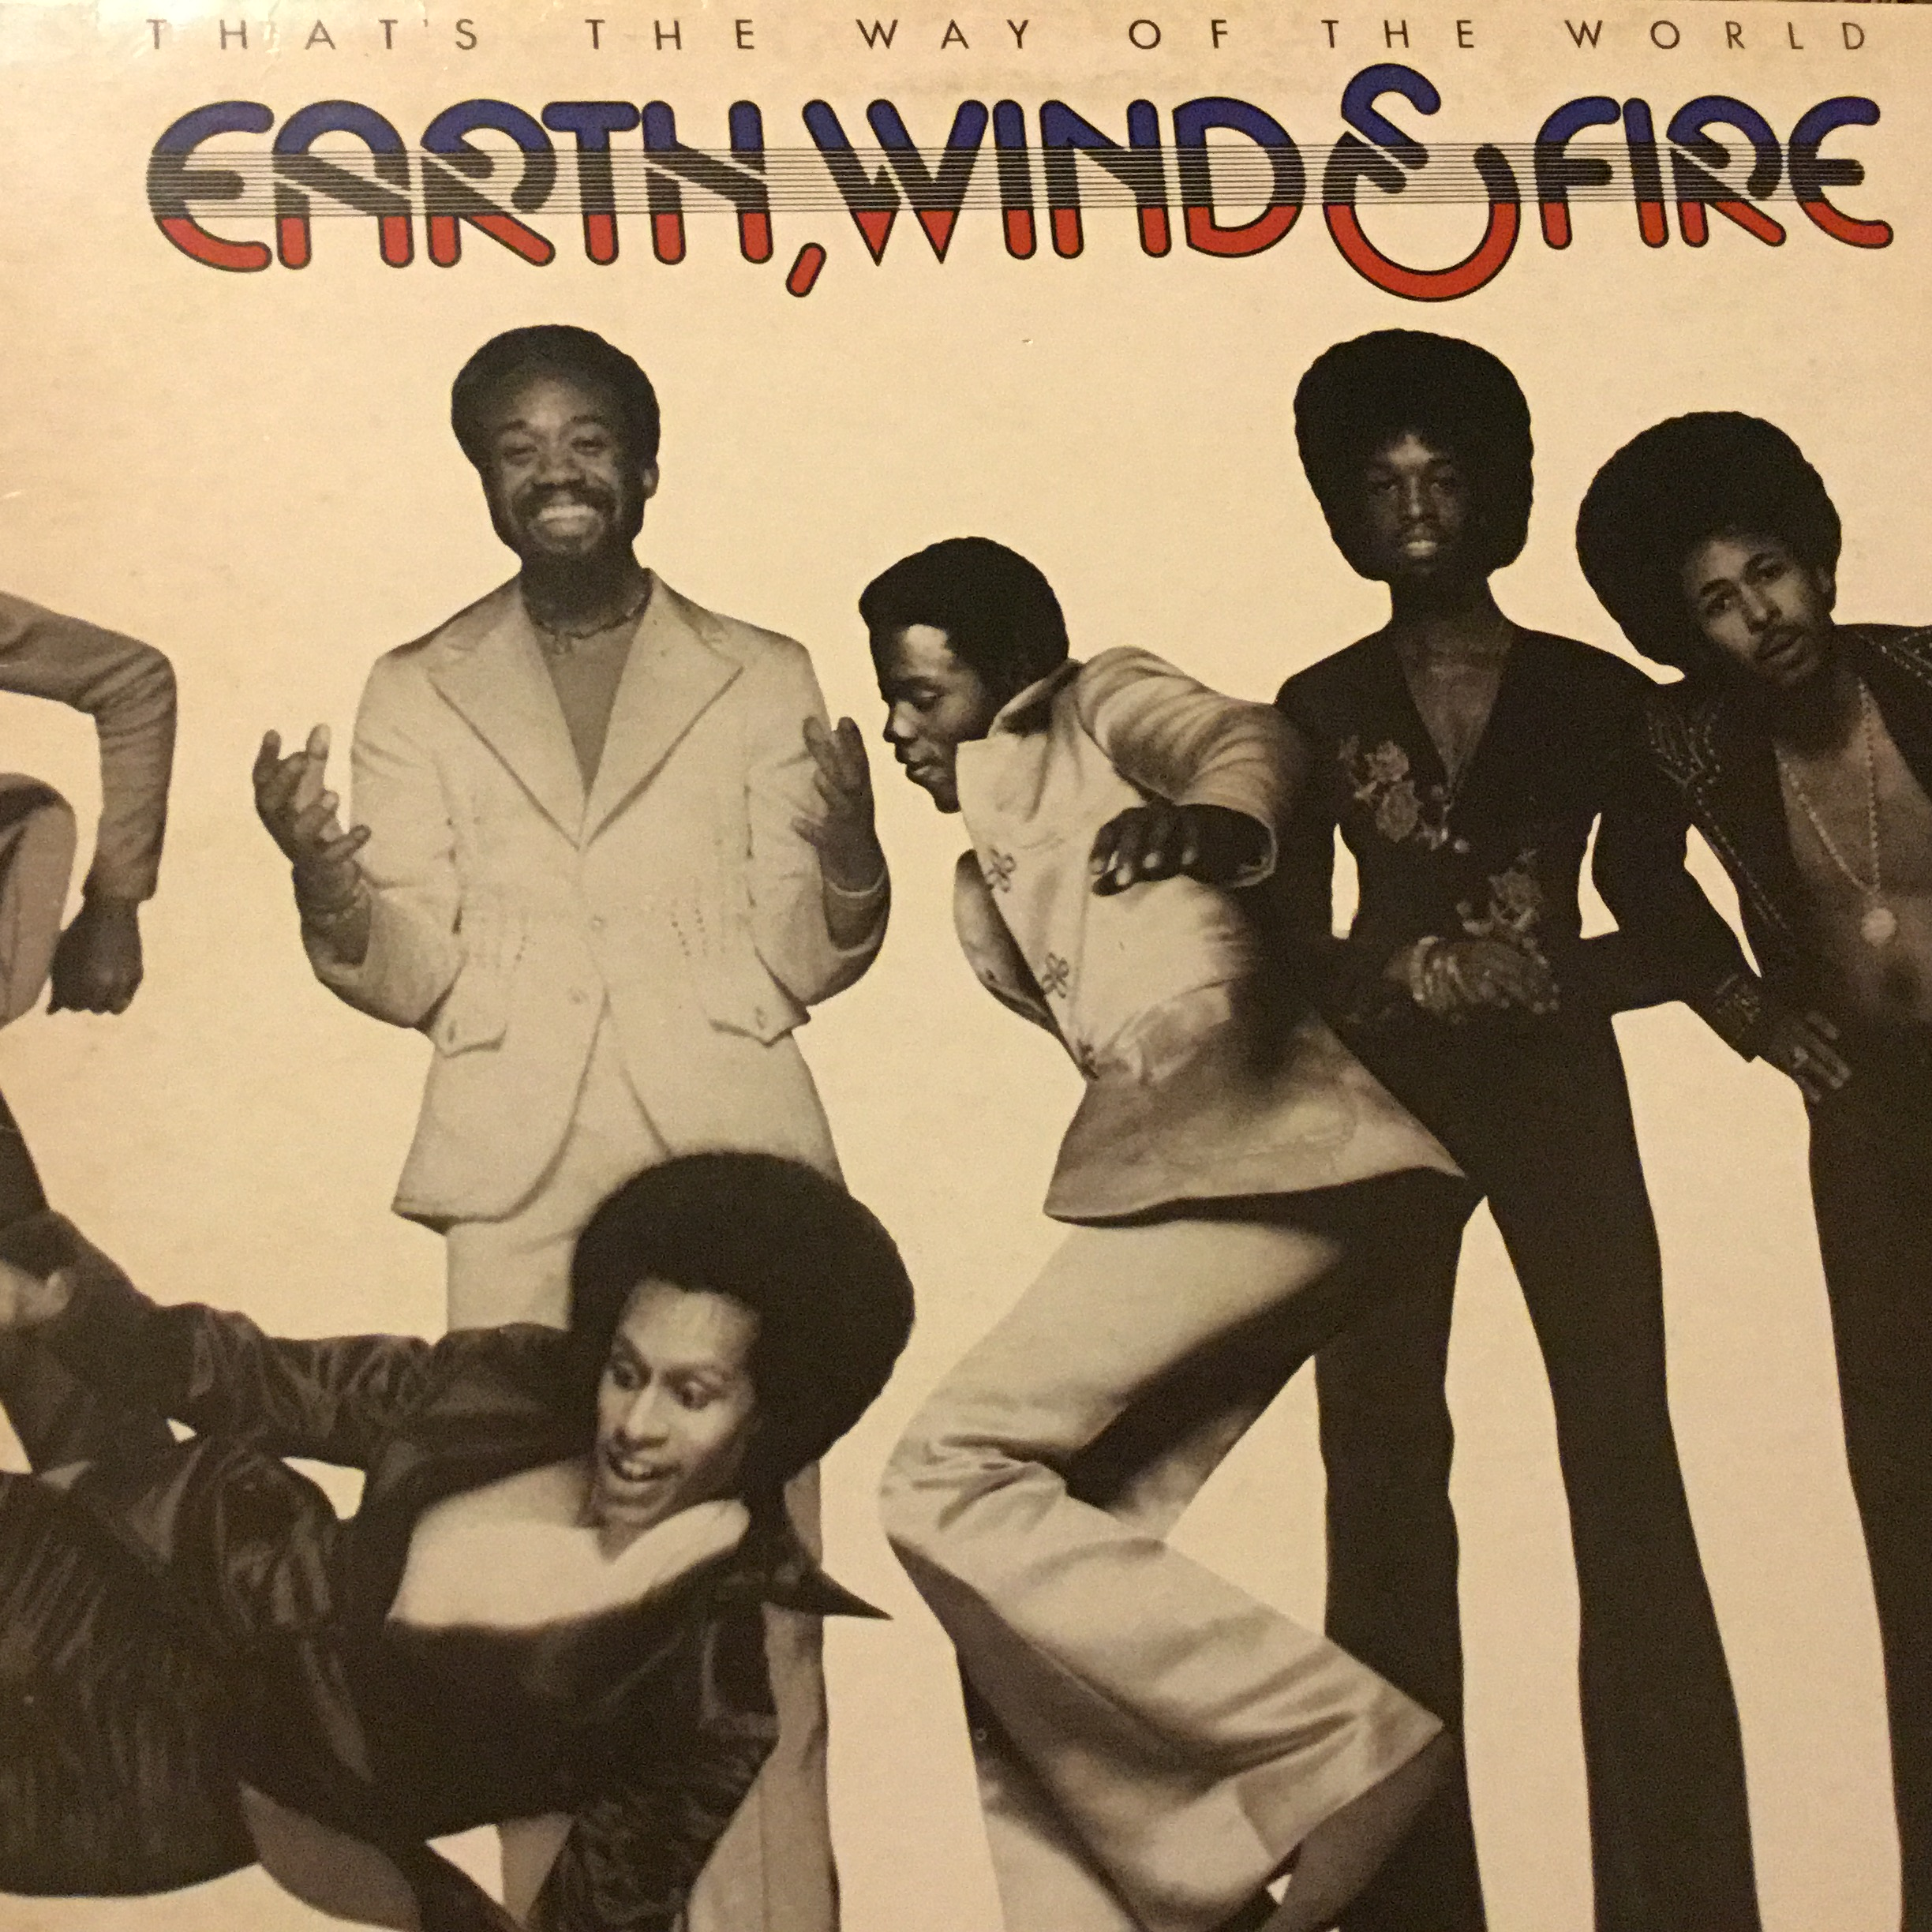 Art for Reasons by Earth, Wind & Fire